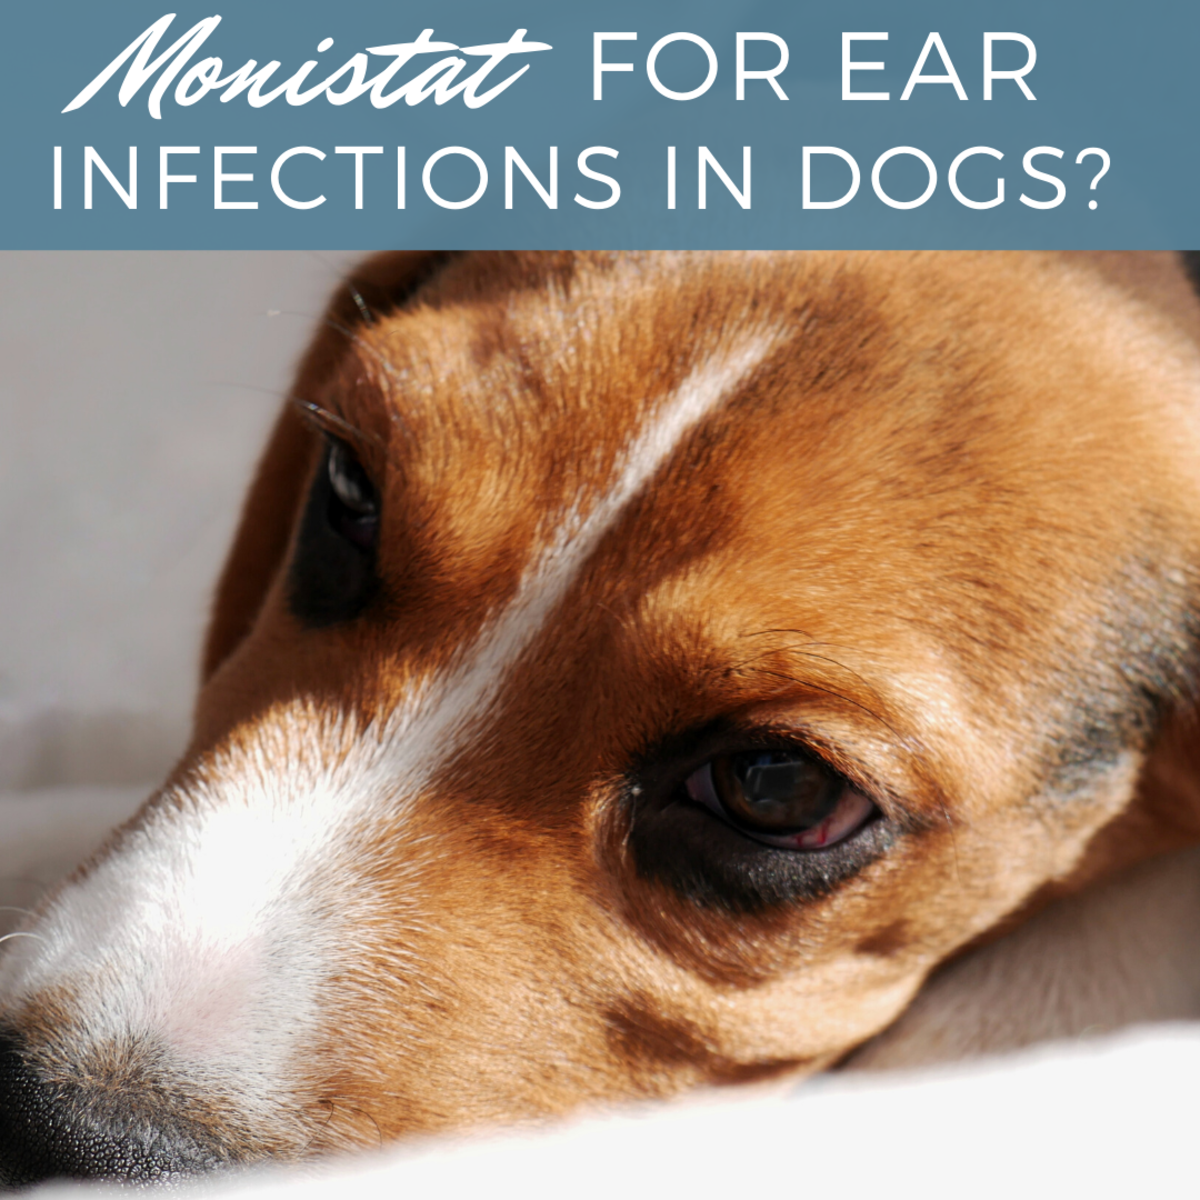 Is Monistat for Dog Ear Infections Safe and Effective?